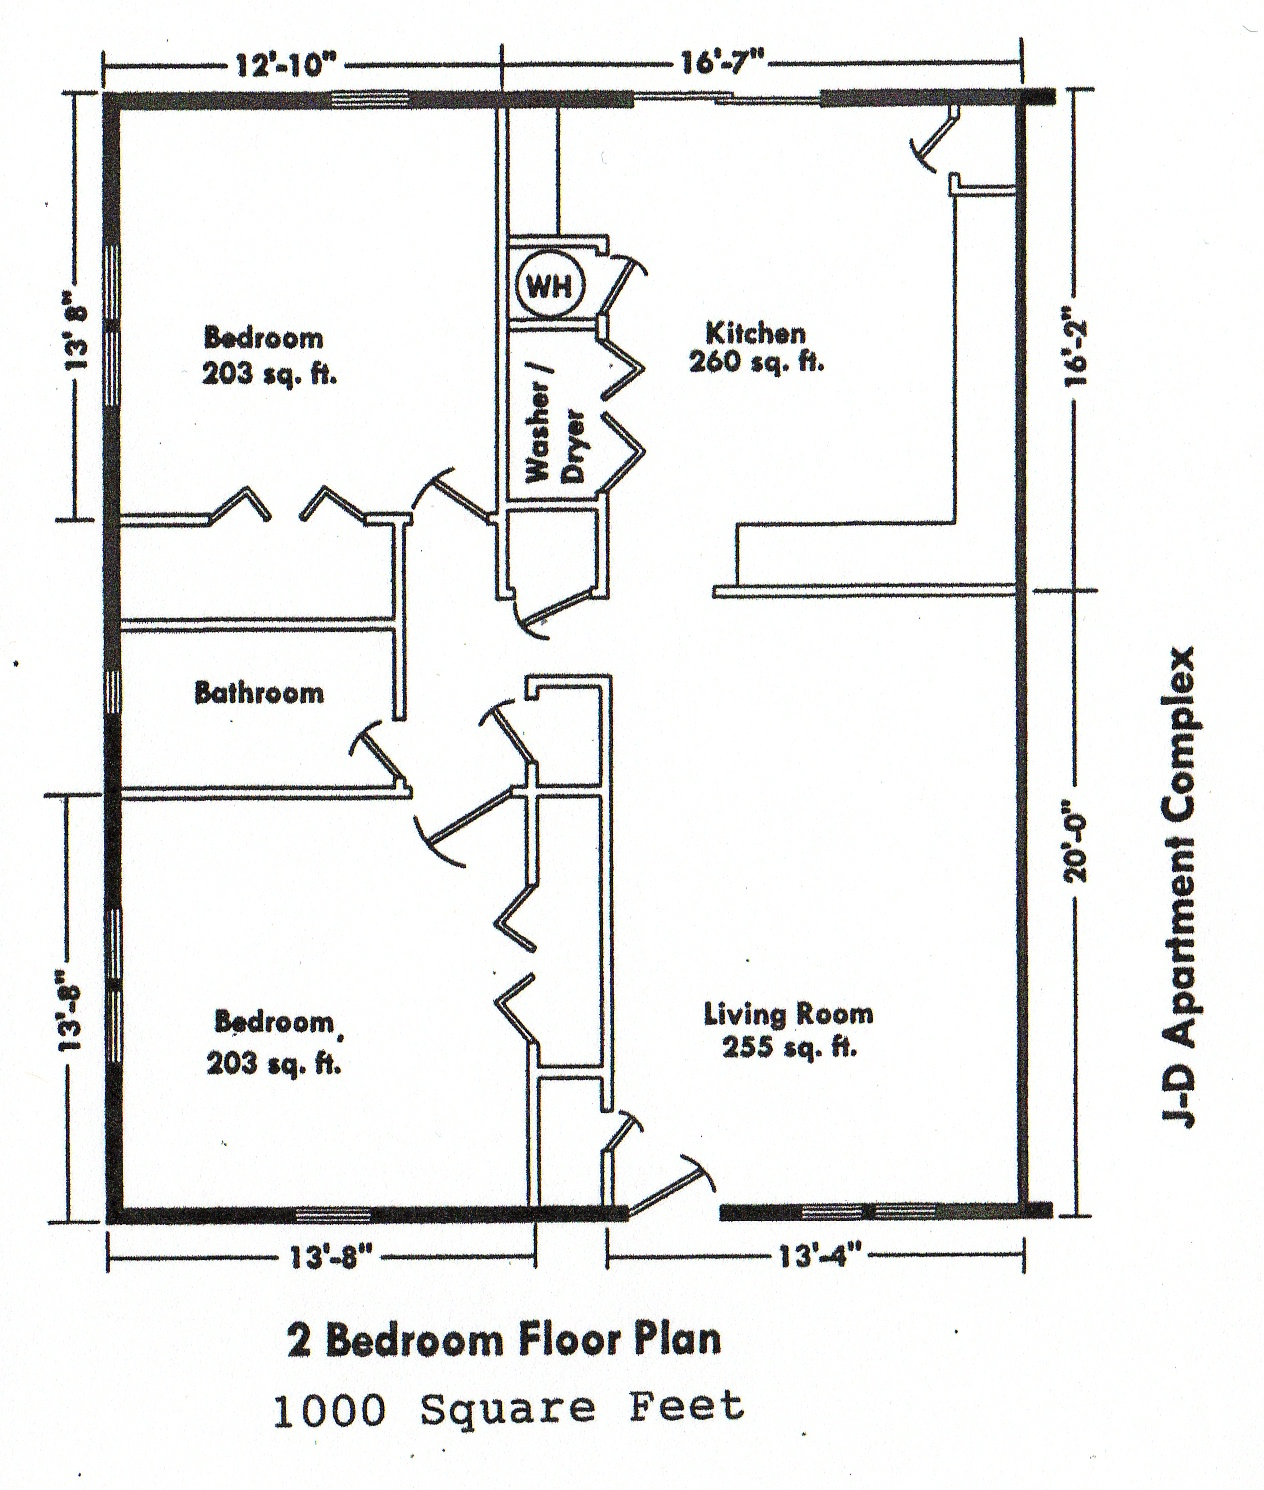 Bedroom floor plans over 5000 house plans 2 bedrooms 2 bathrooms house plans